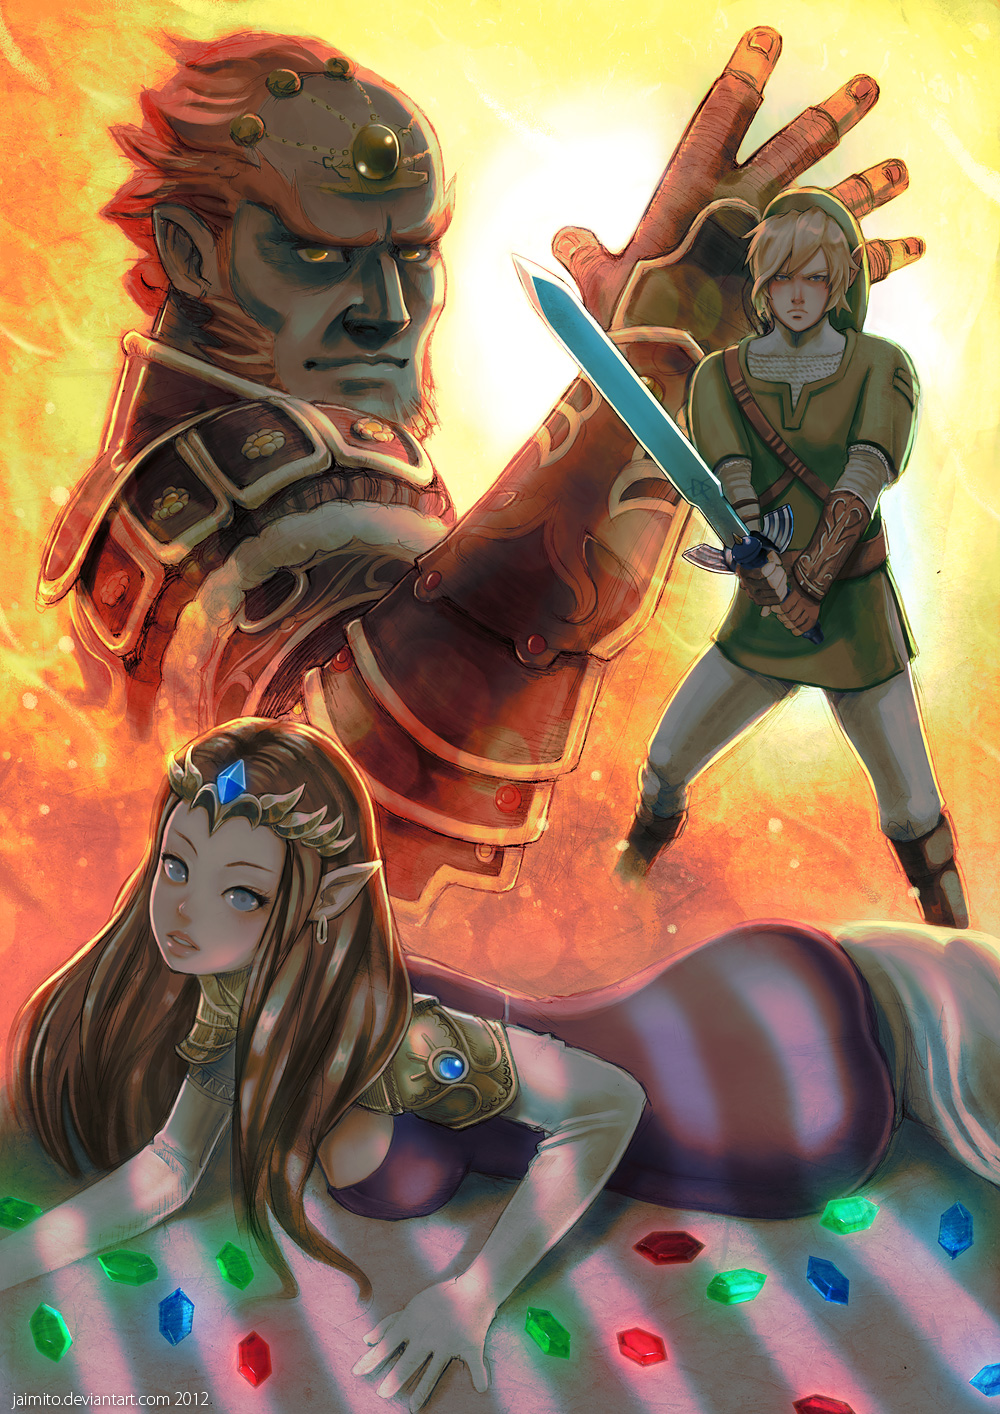 Zelda Ganon and Link by jaimito